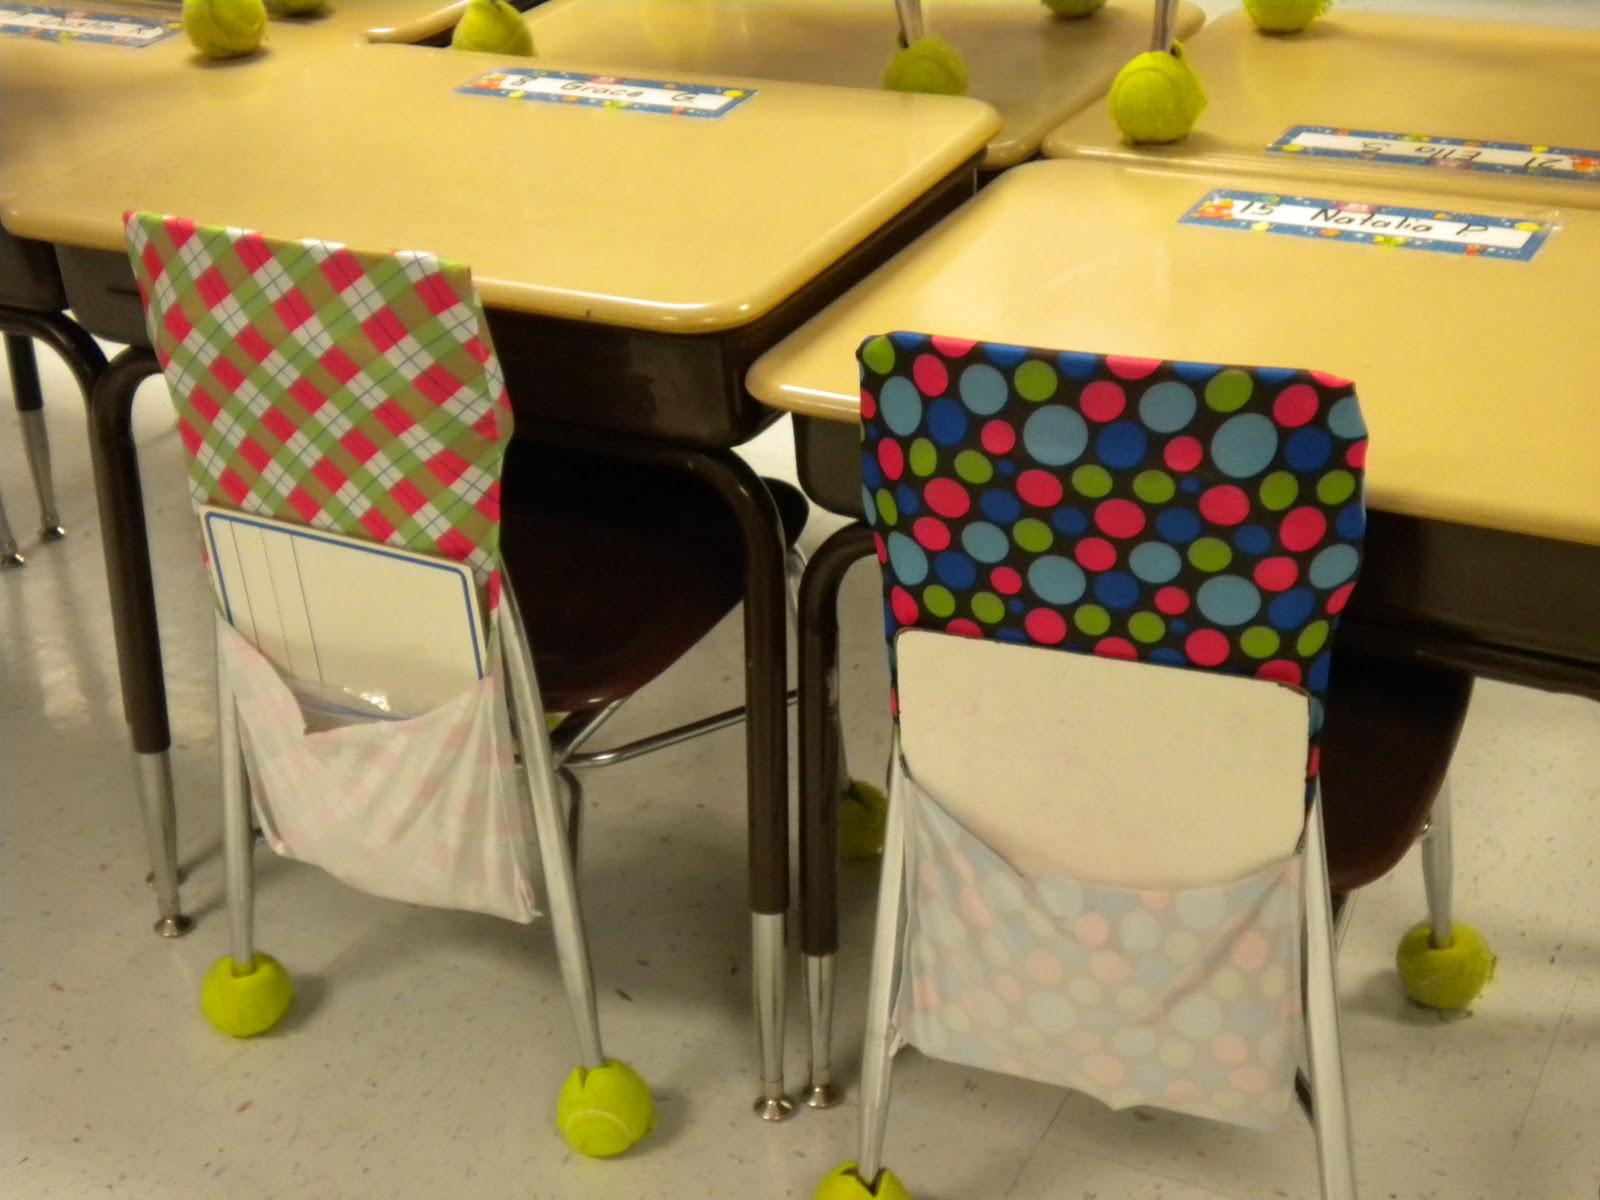 Chair Covers For Classroom Revolving Buy Online India My Second Home Pinspiration And Tweaking